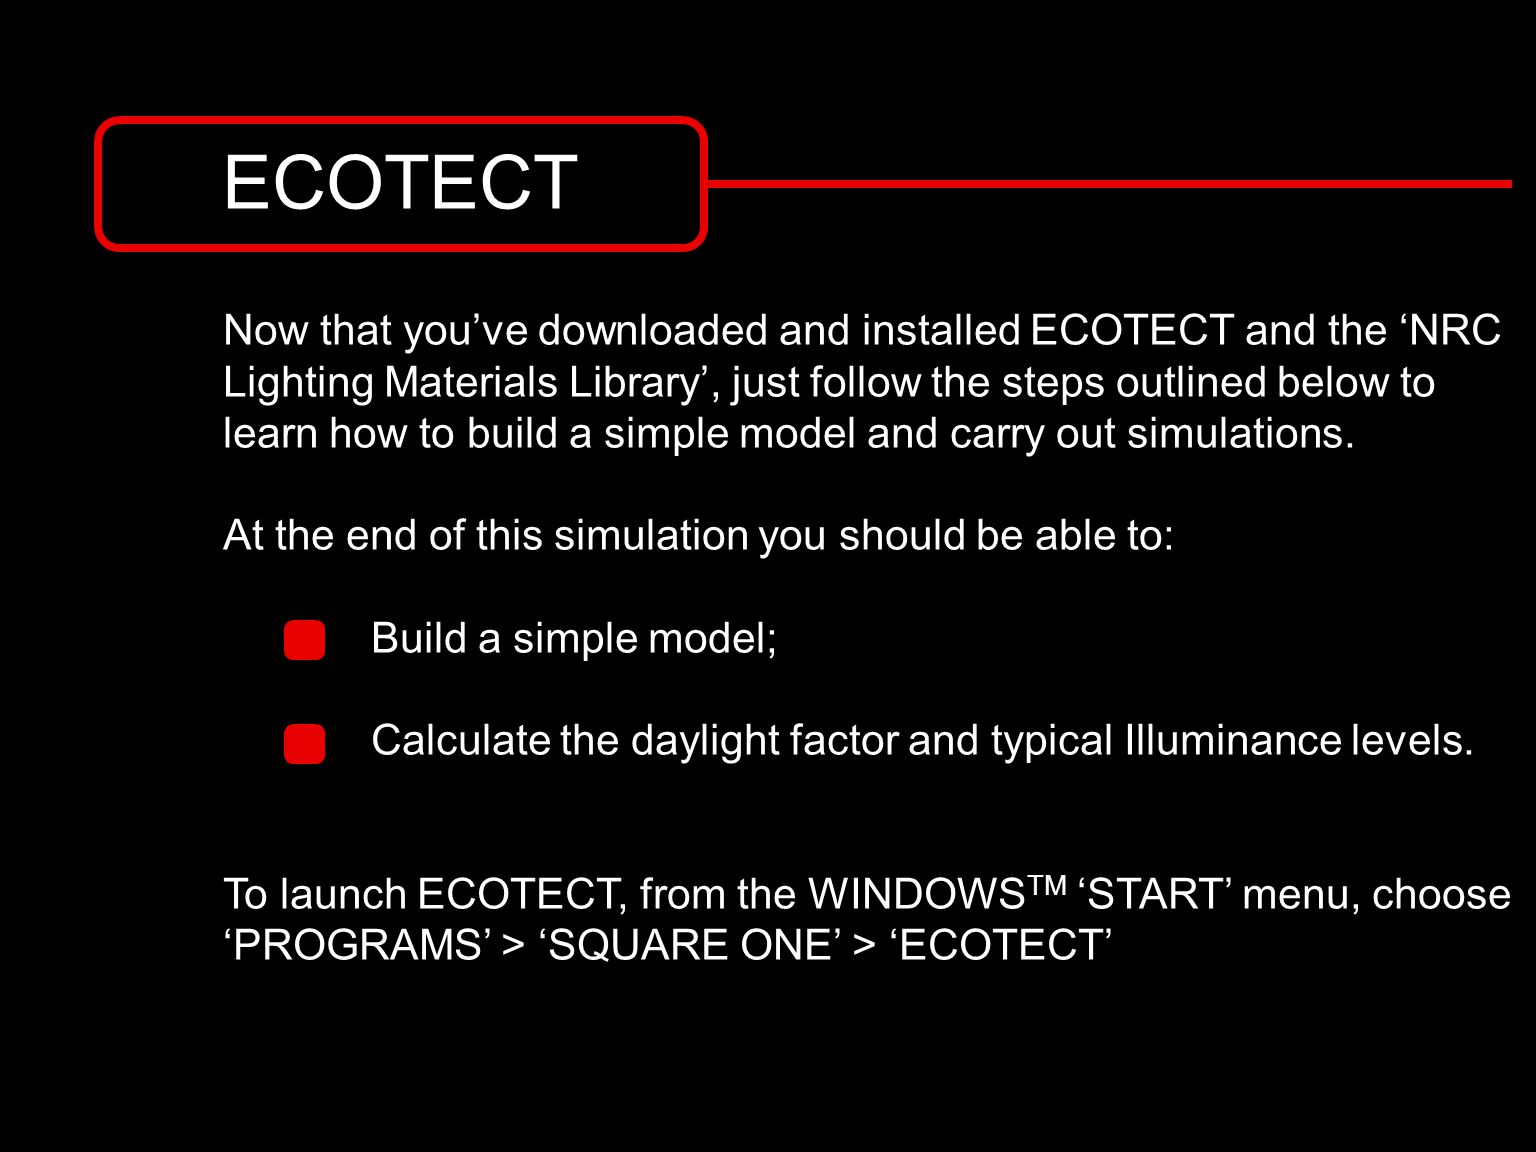 ECOTECT Now that you've downloaded and installed ECOTECT and the 'NRC Lighting Materials Library', just follow the steps outlined below to learn how to build a simple model and carry out simulations.